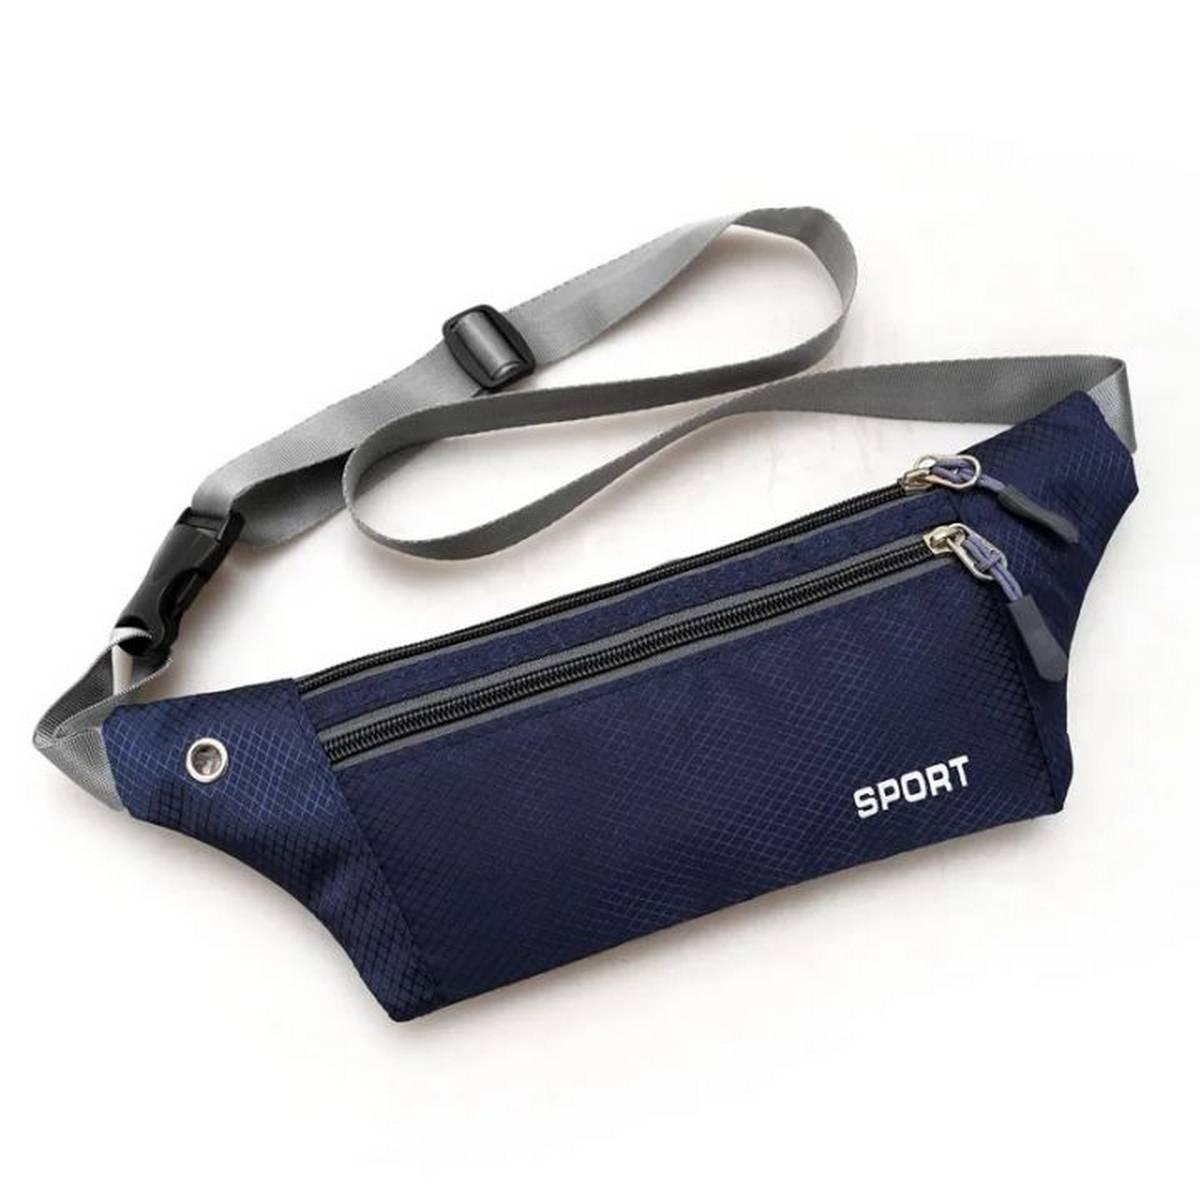 Nylon Wallet Bags Run Outdoor Camping Sports Belt Bicycle Riding Mobile Phone Waist Fitness Gym Backpack Accessories